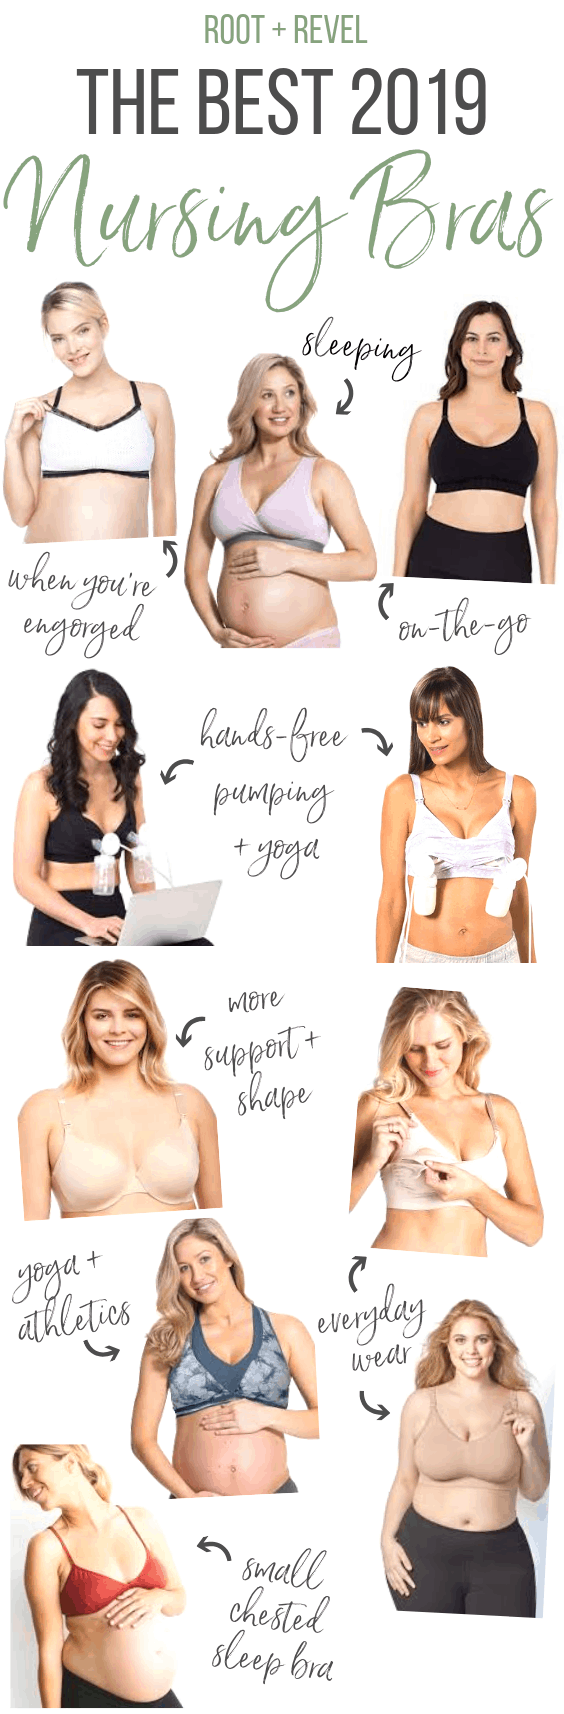 Are you breastfeeding? This guide to the best nursing bras is for you, mama! We've rounded up the best nursing clothing (from bras, tops, dresses and pajama sets) for nursing moms in 2019. Large breasts, small chests, these nursing products have an eco-friendly twist for natural mamas! Exclusive discount codes included to save you money!